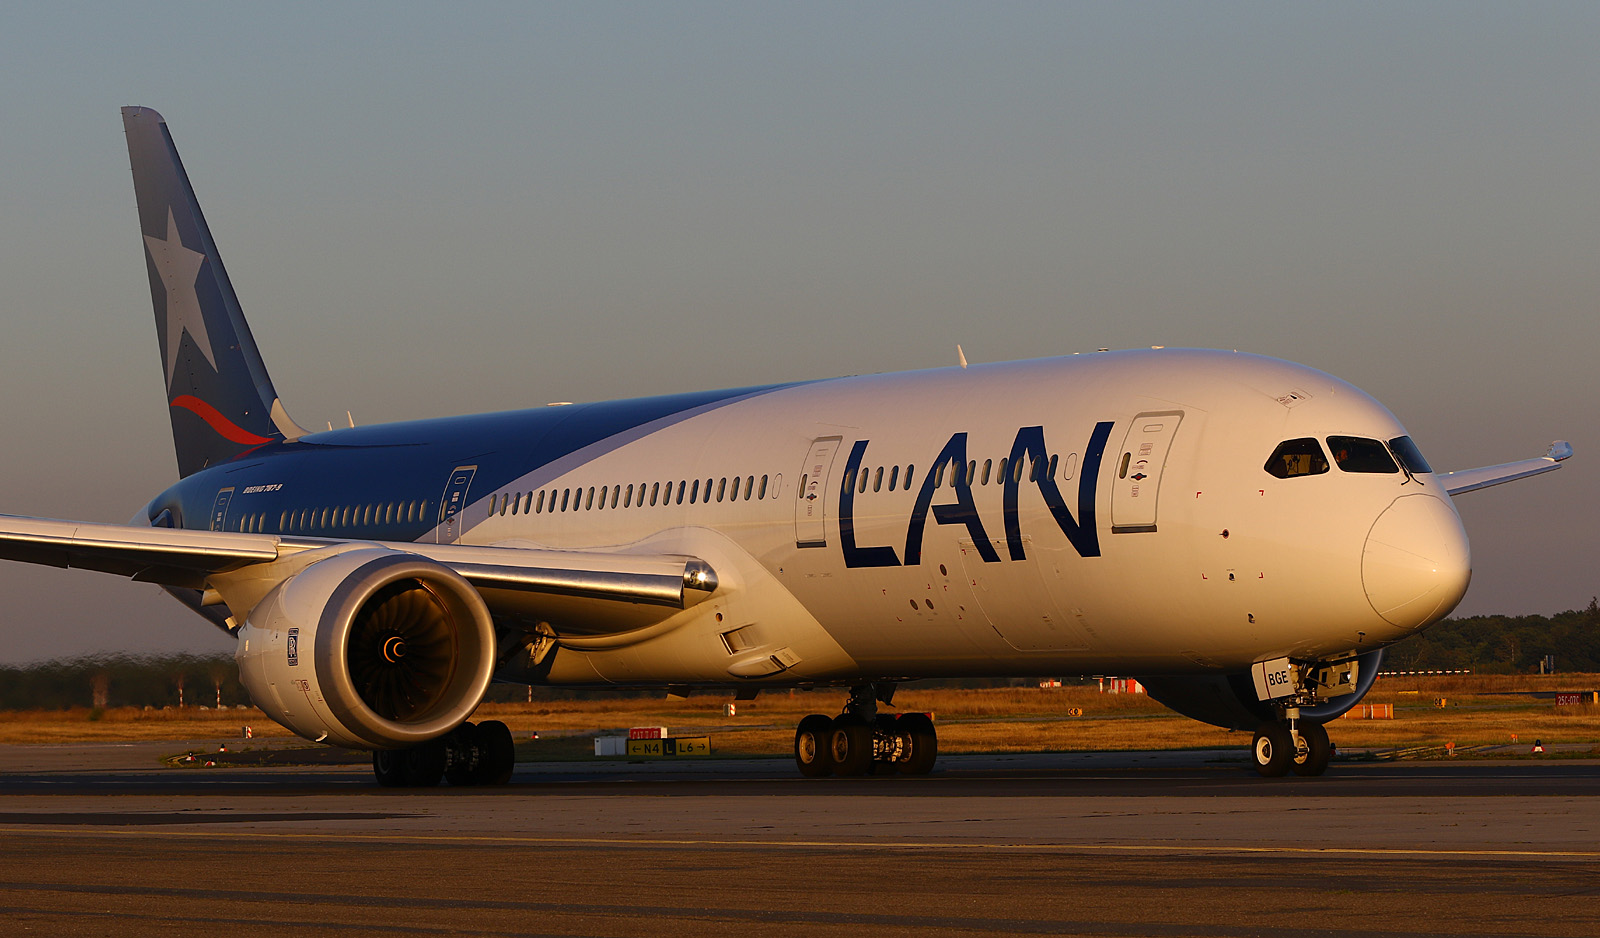 LAN 787 at Frankfurt Airport